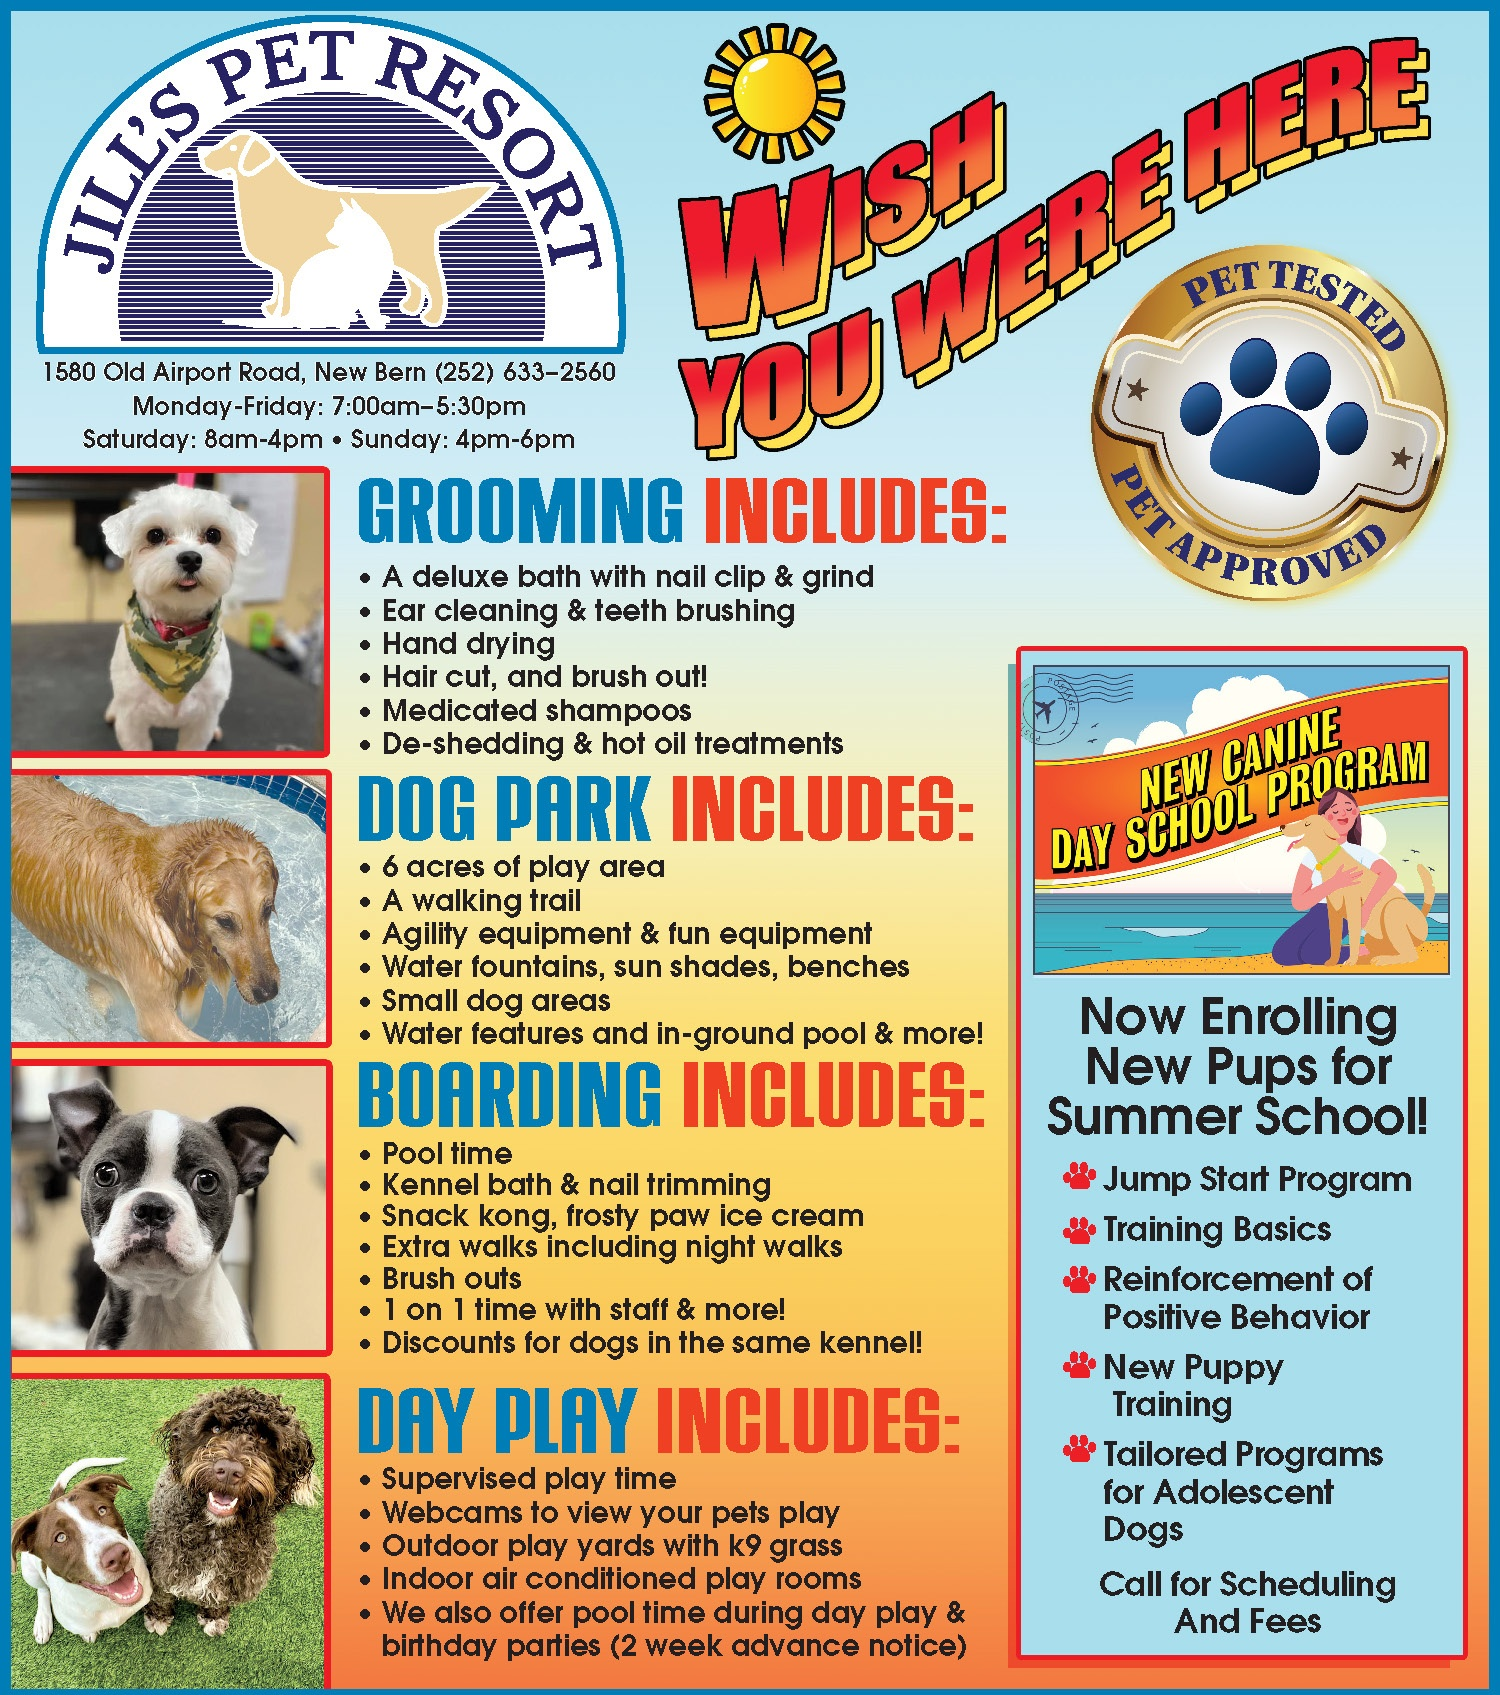 07-30-2020 Jill's Pet Resort Full Page Color Taberna